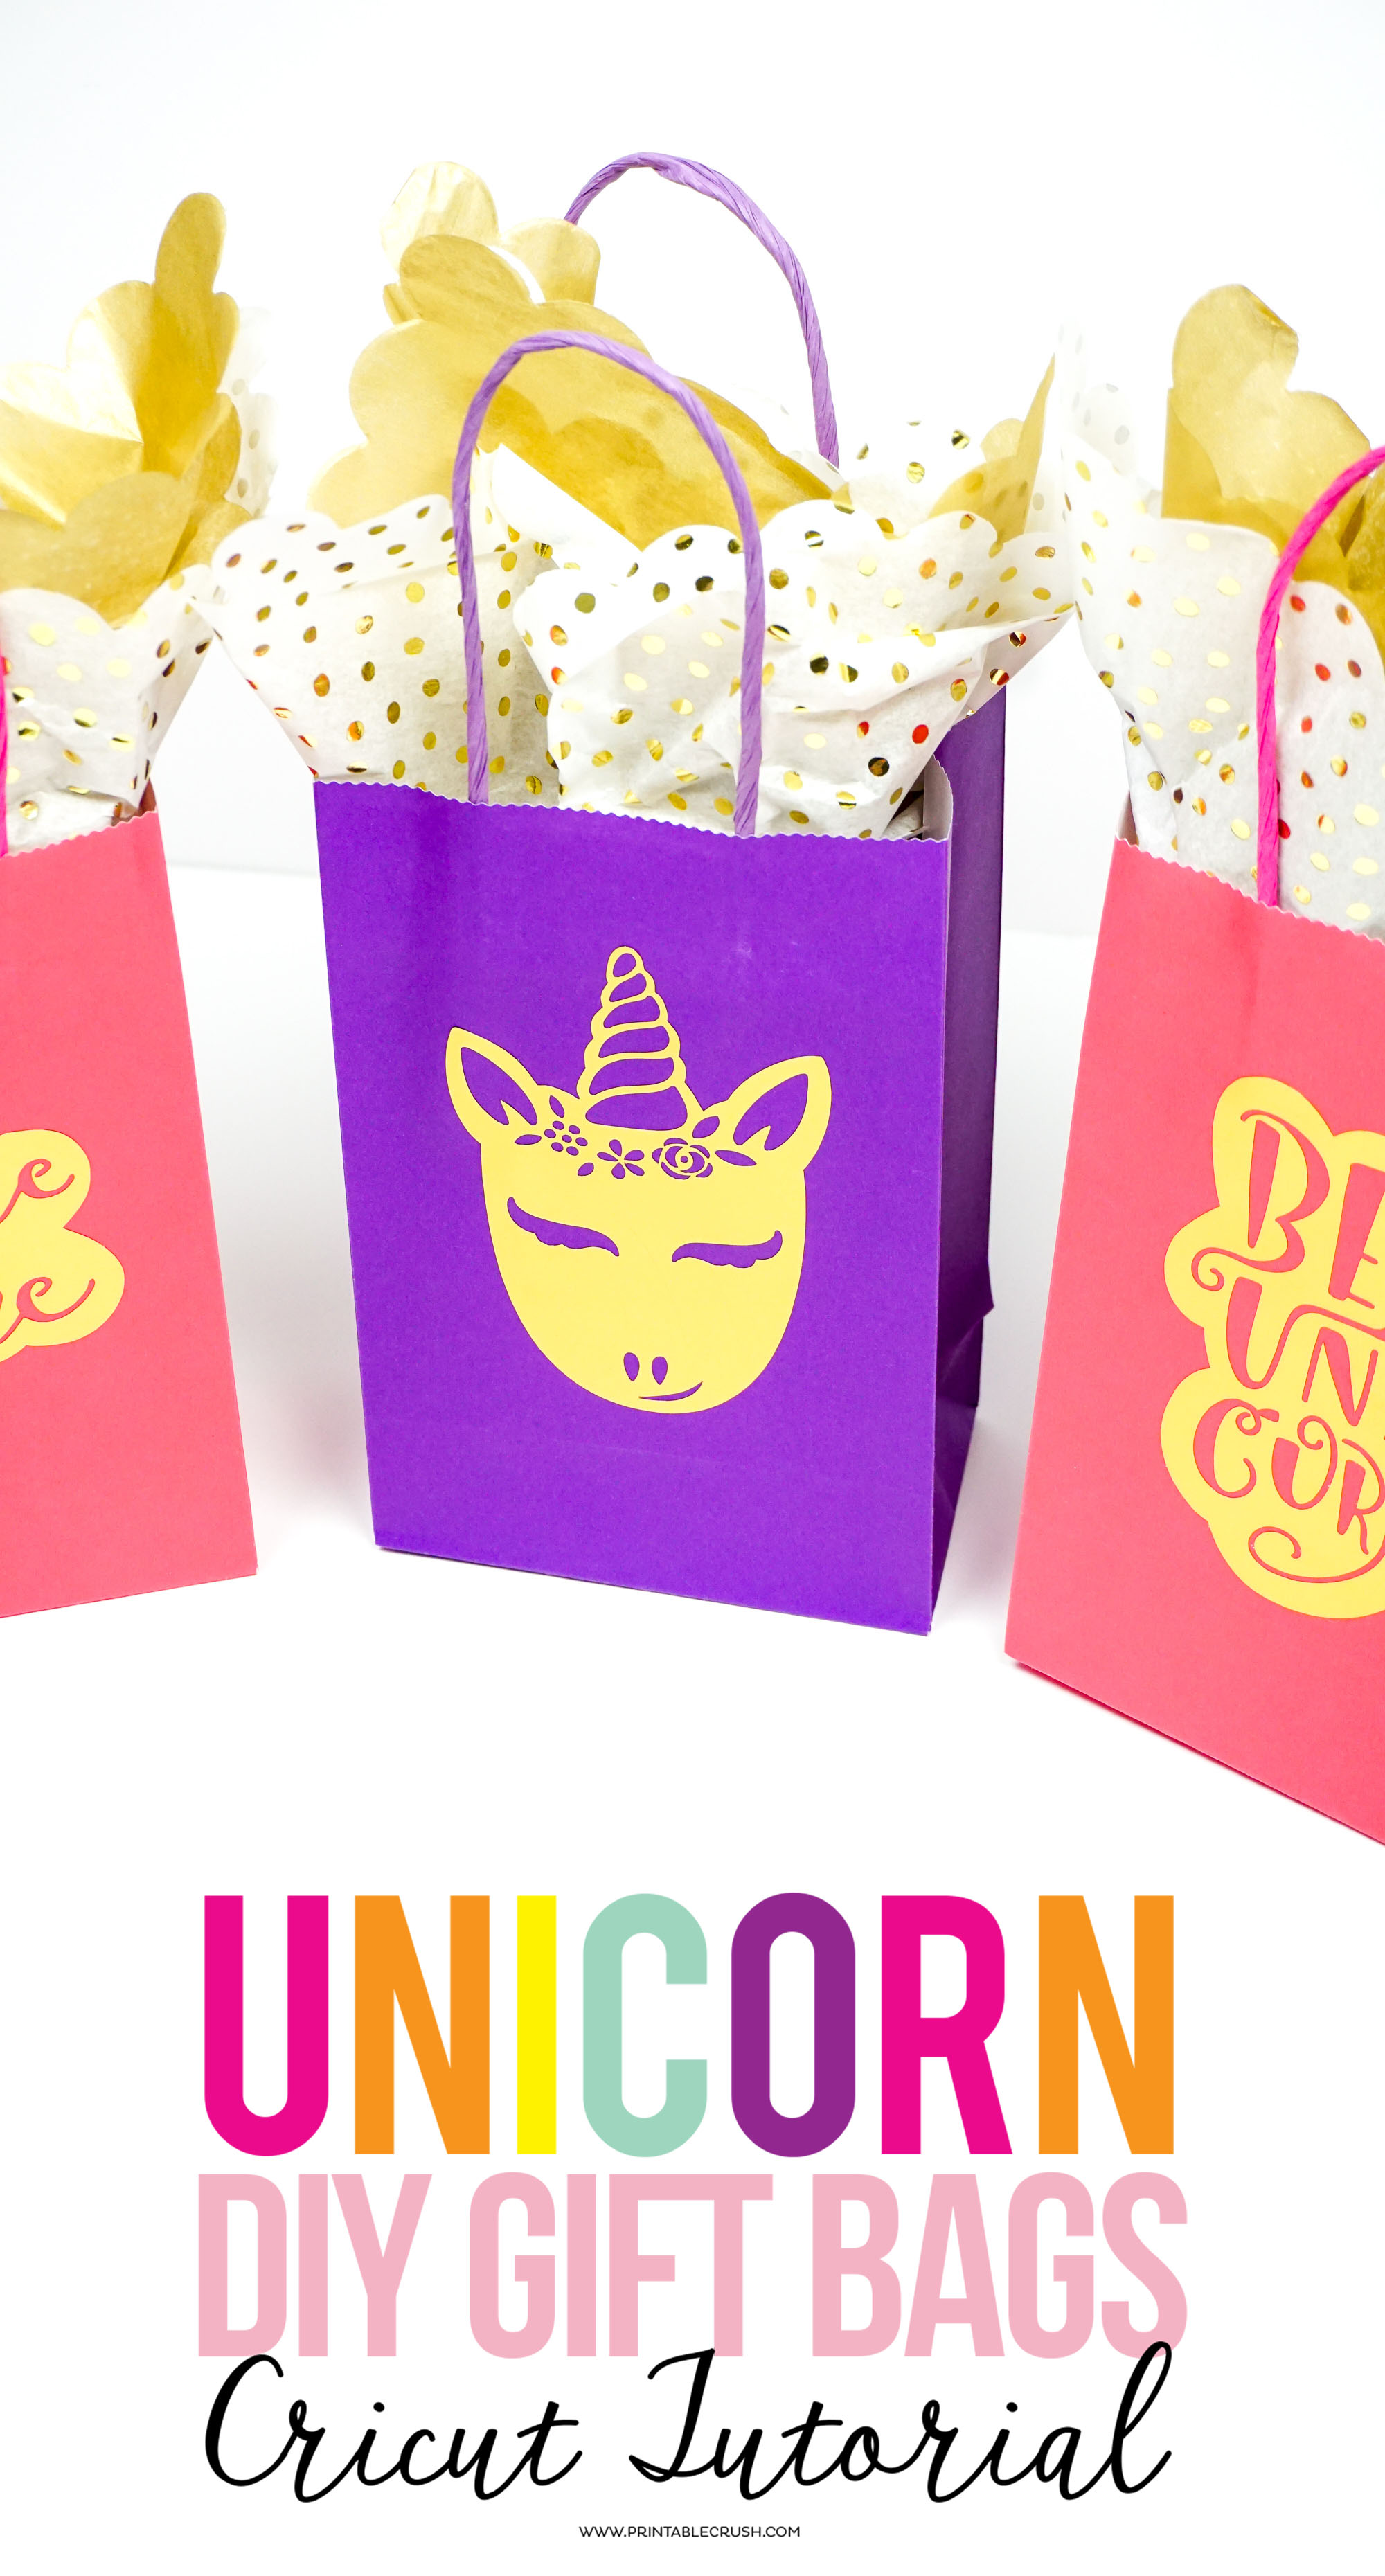 These Gold Foil Diy Unicorn Gift Bags Add A Personal